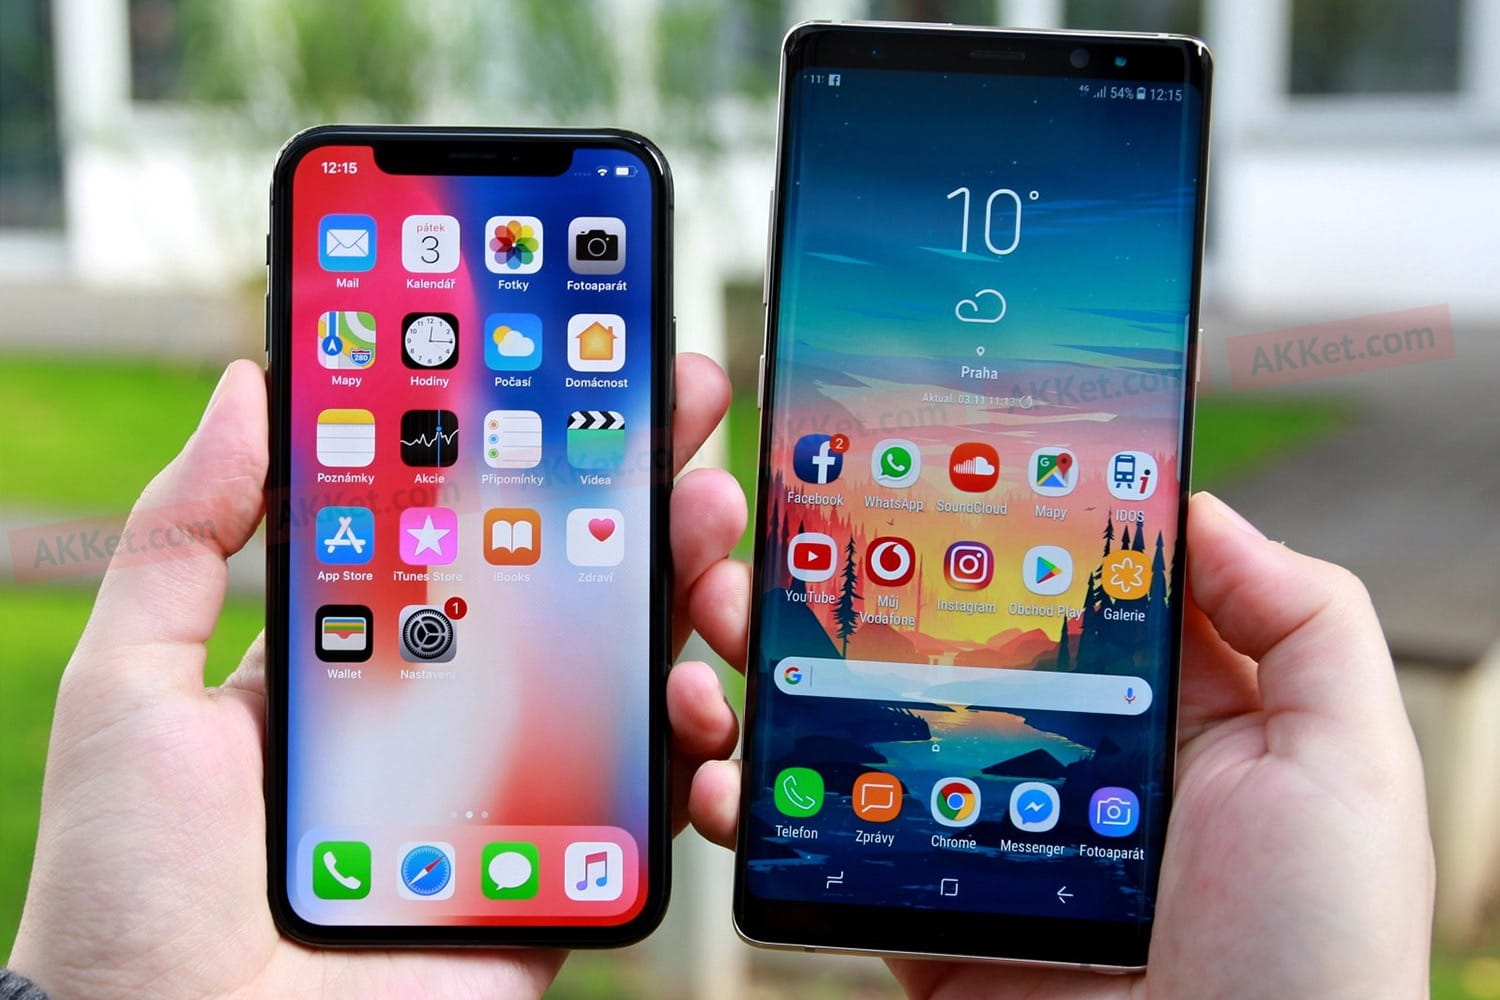 samsung comparison with apple We pit the oneplus 6 against the samsung galaxy s9+ and apple iphone x to draw the comparison among them in terms of specifications and price.